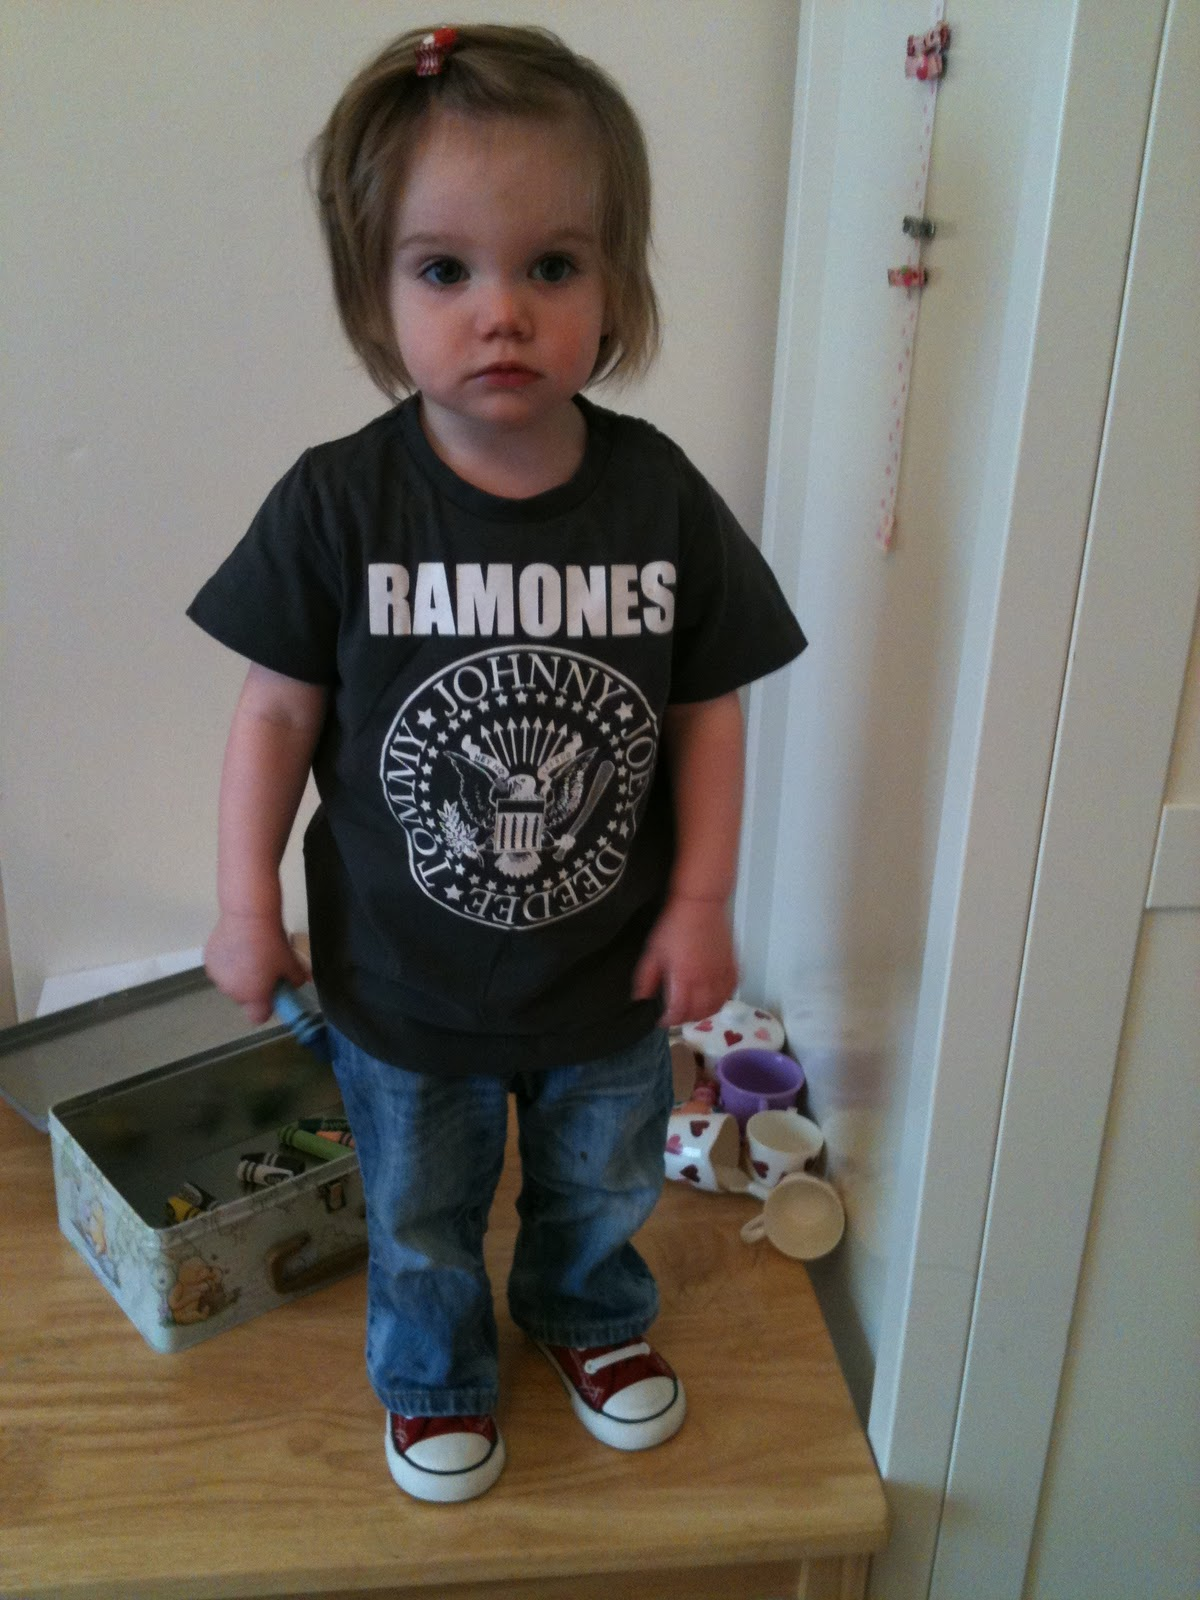 Child named Daisy wearing Ramones t-shirt